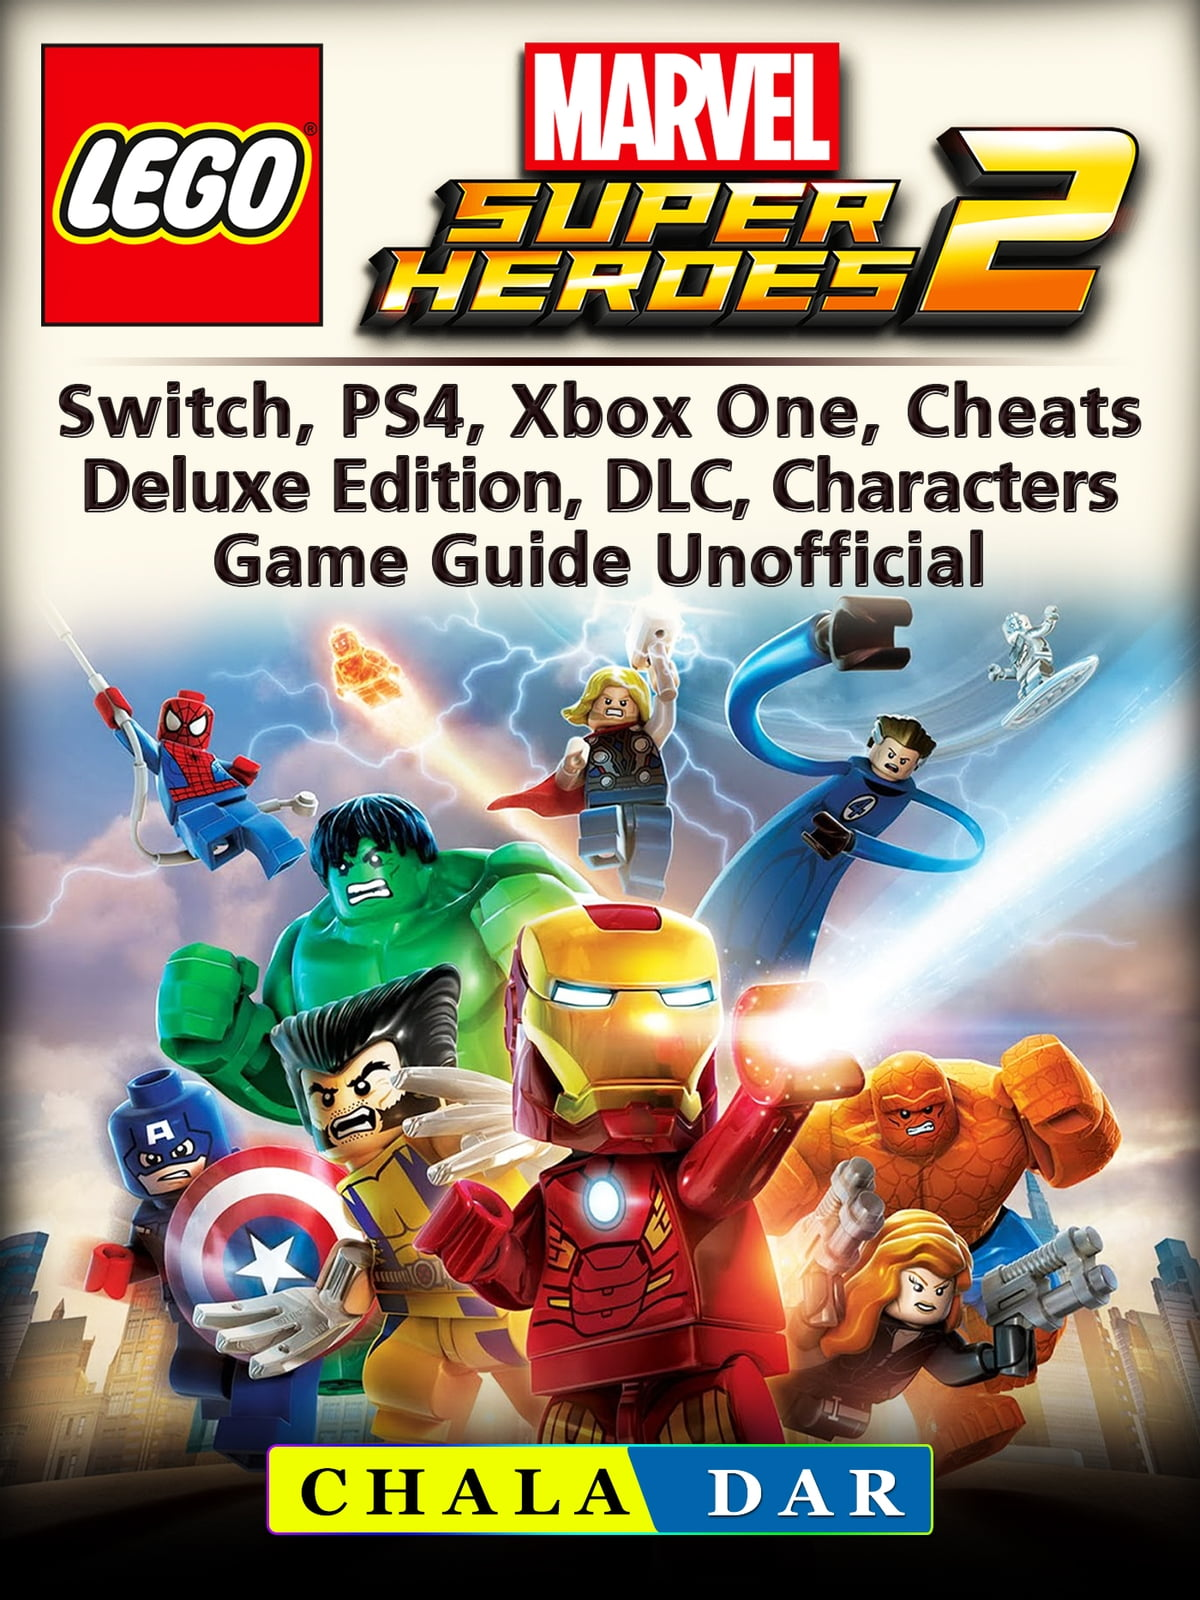 Lego Marvel Super Heroes 2, Switch, PS4, Xbox One, Cheats, Deluxe Edition,  DLC, Characters, Game Guide Unofficial ebook by Chala Dar - Rakuten Kobo